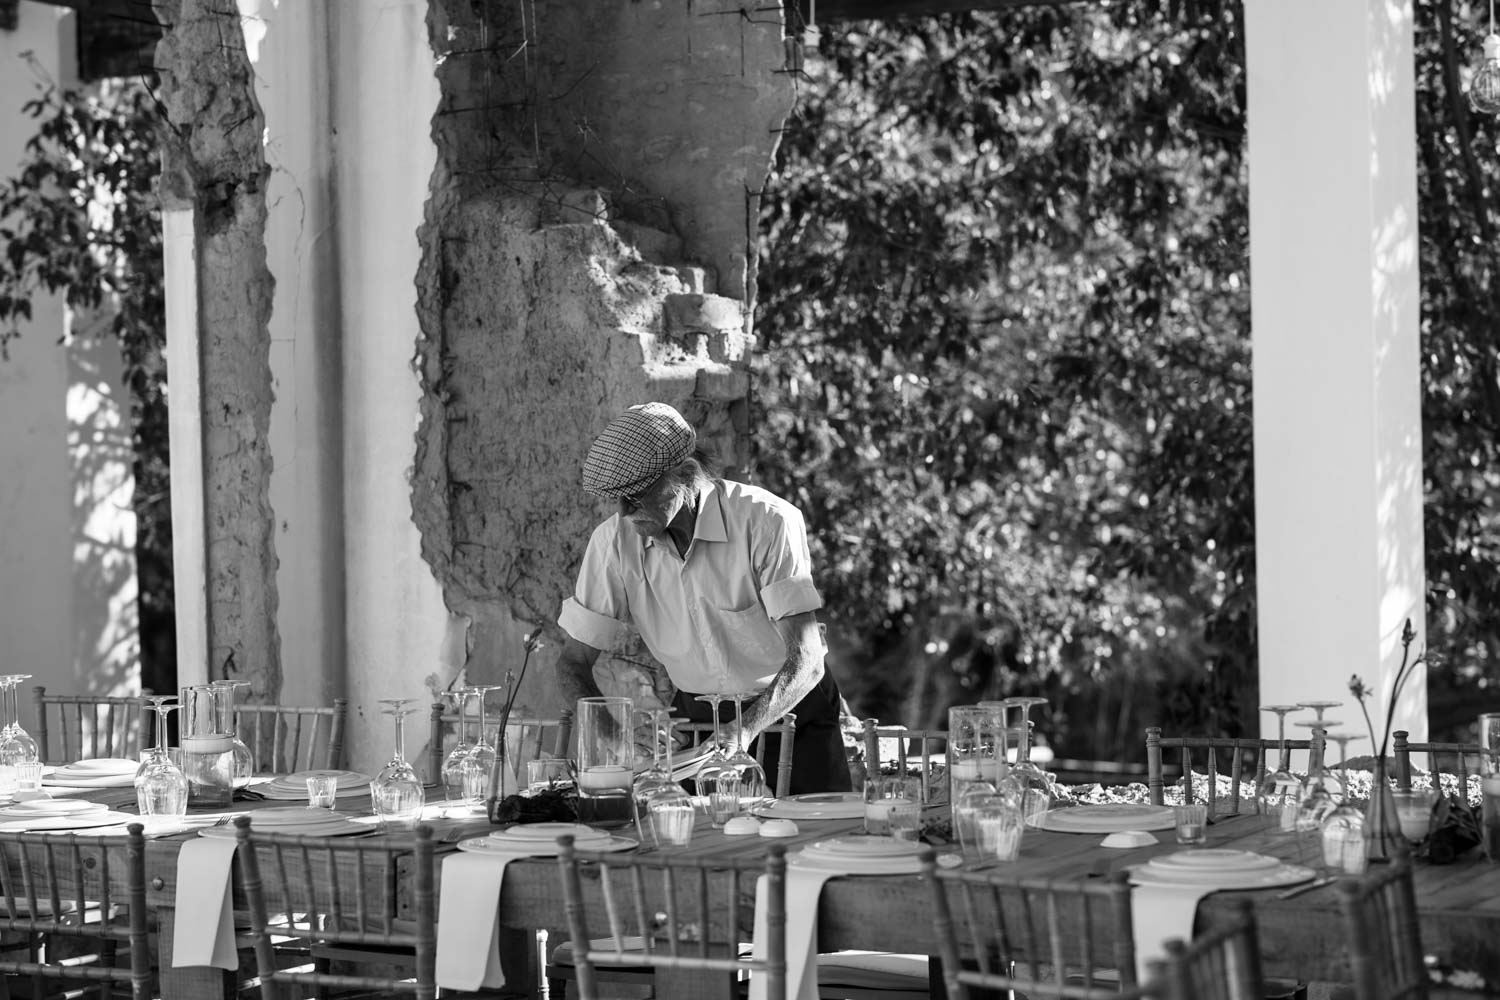 Old man with hat setting up the table for a lazy wedding lunch in Tulbagh, Cape Town.